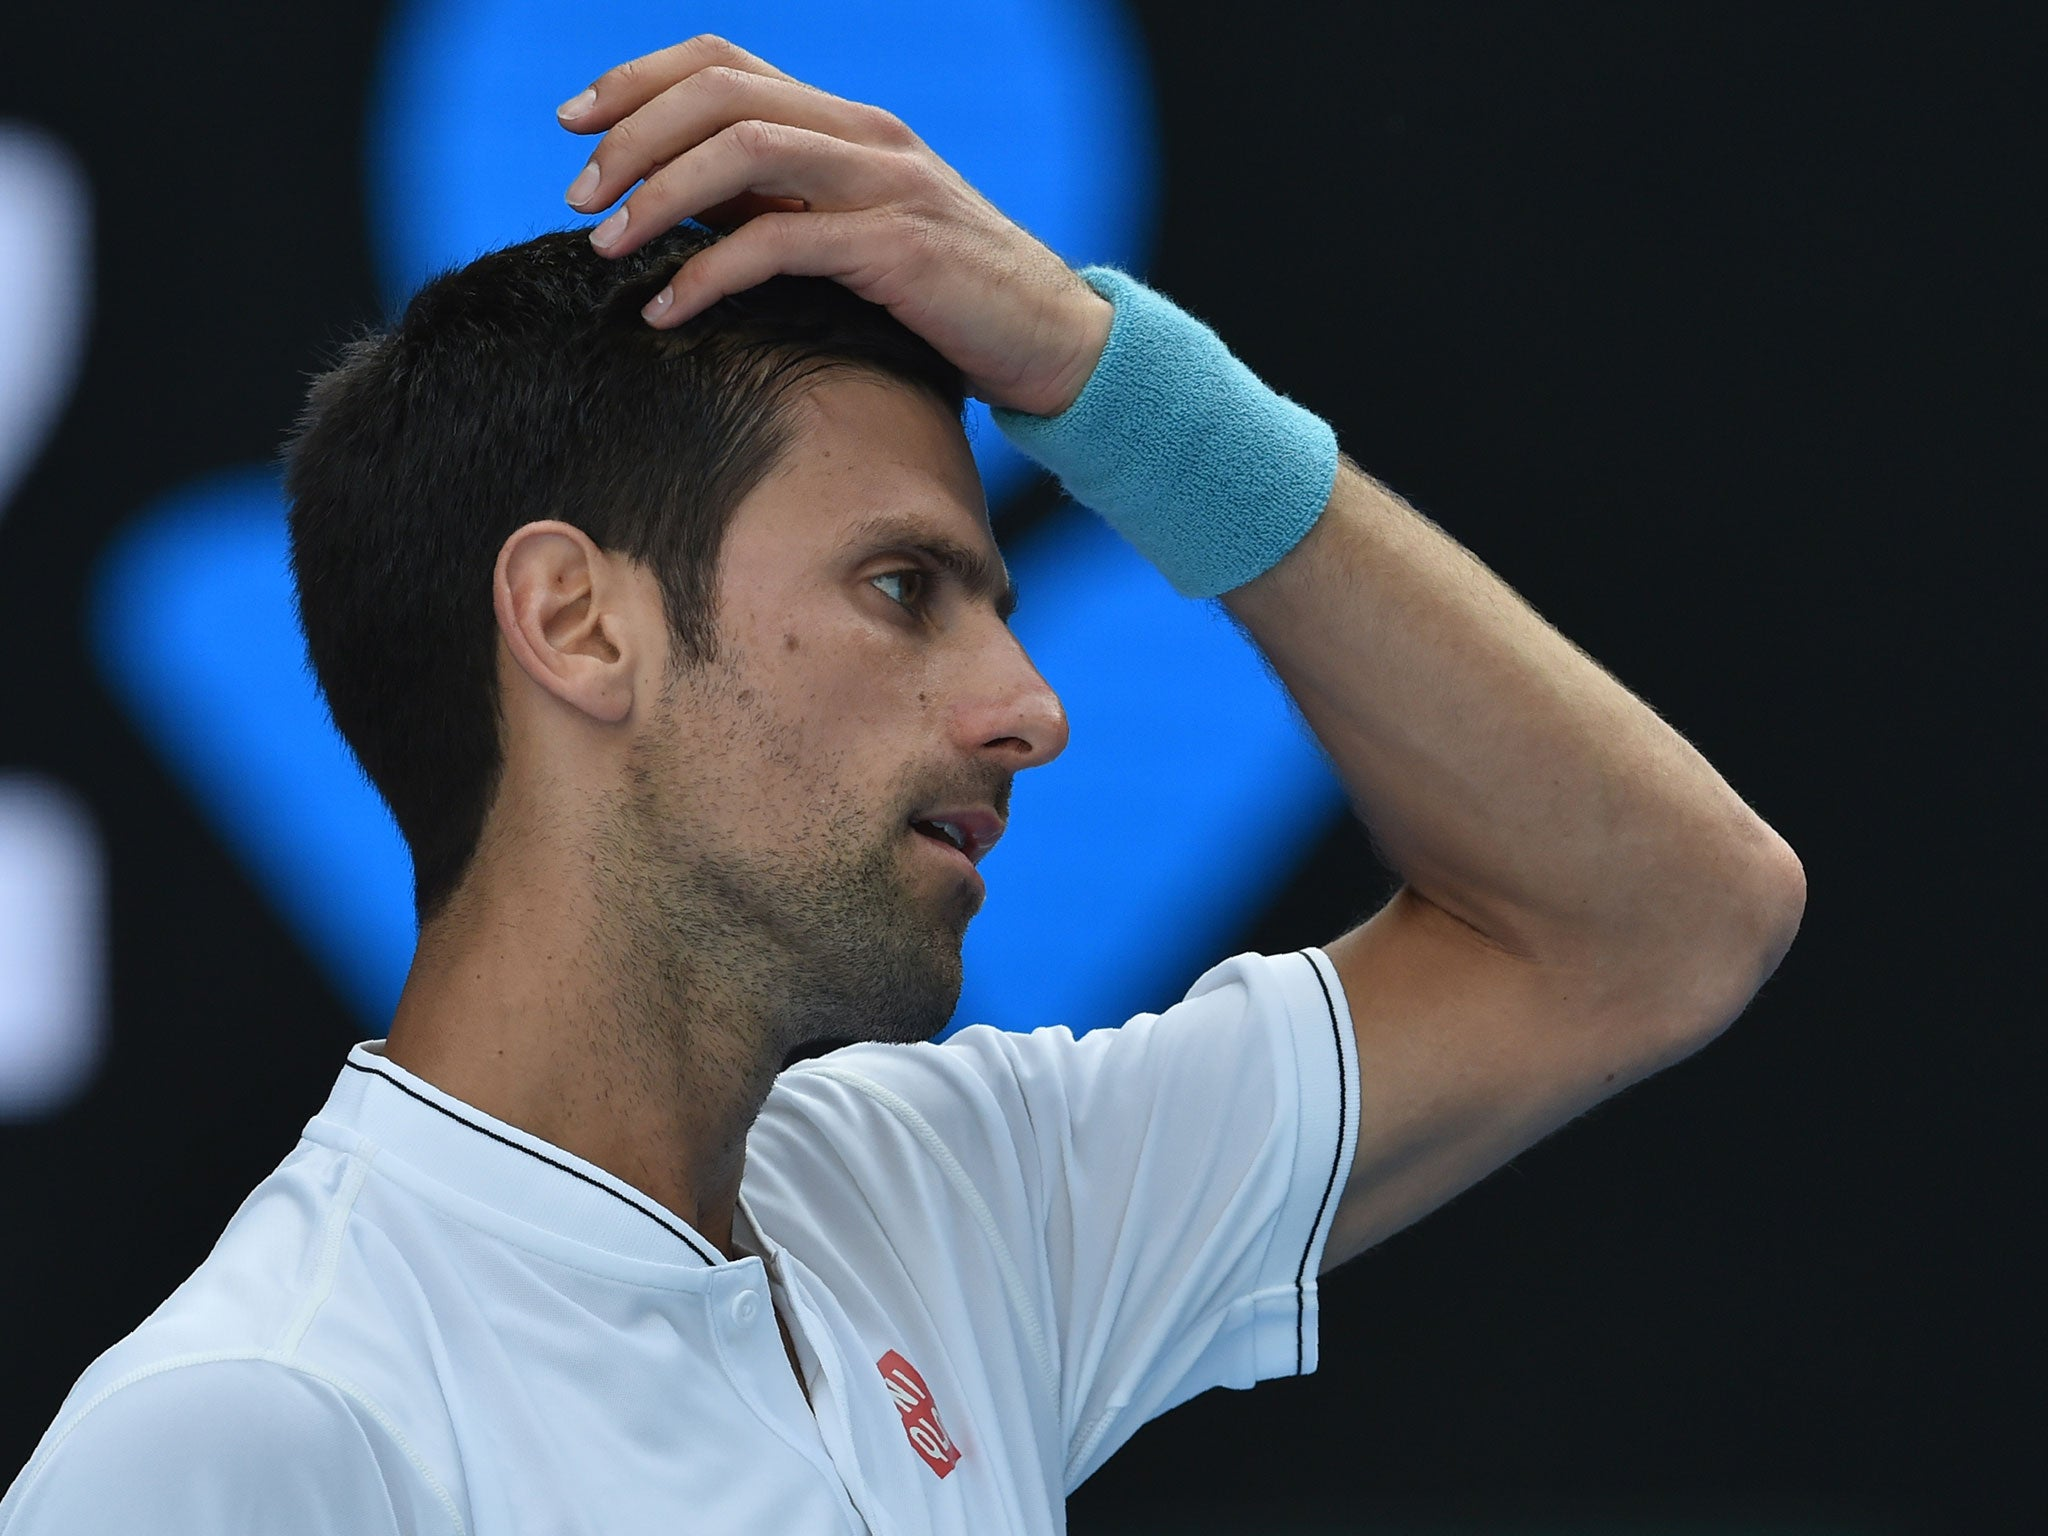 Novak Djokovic defends himself against motivation doubts after